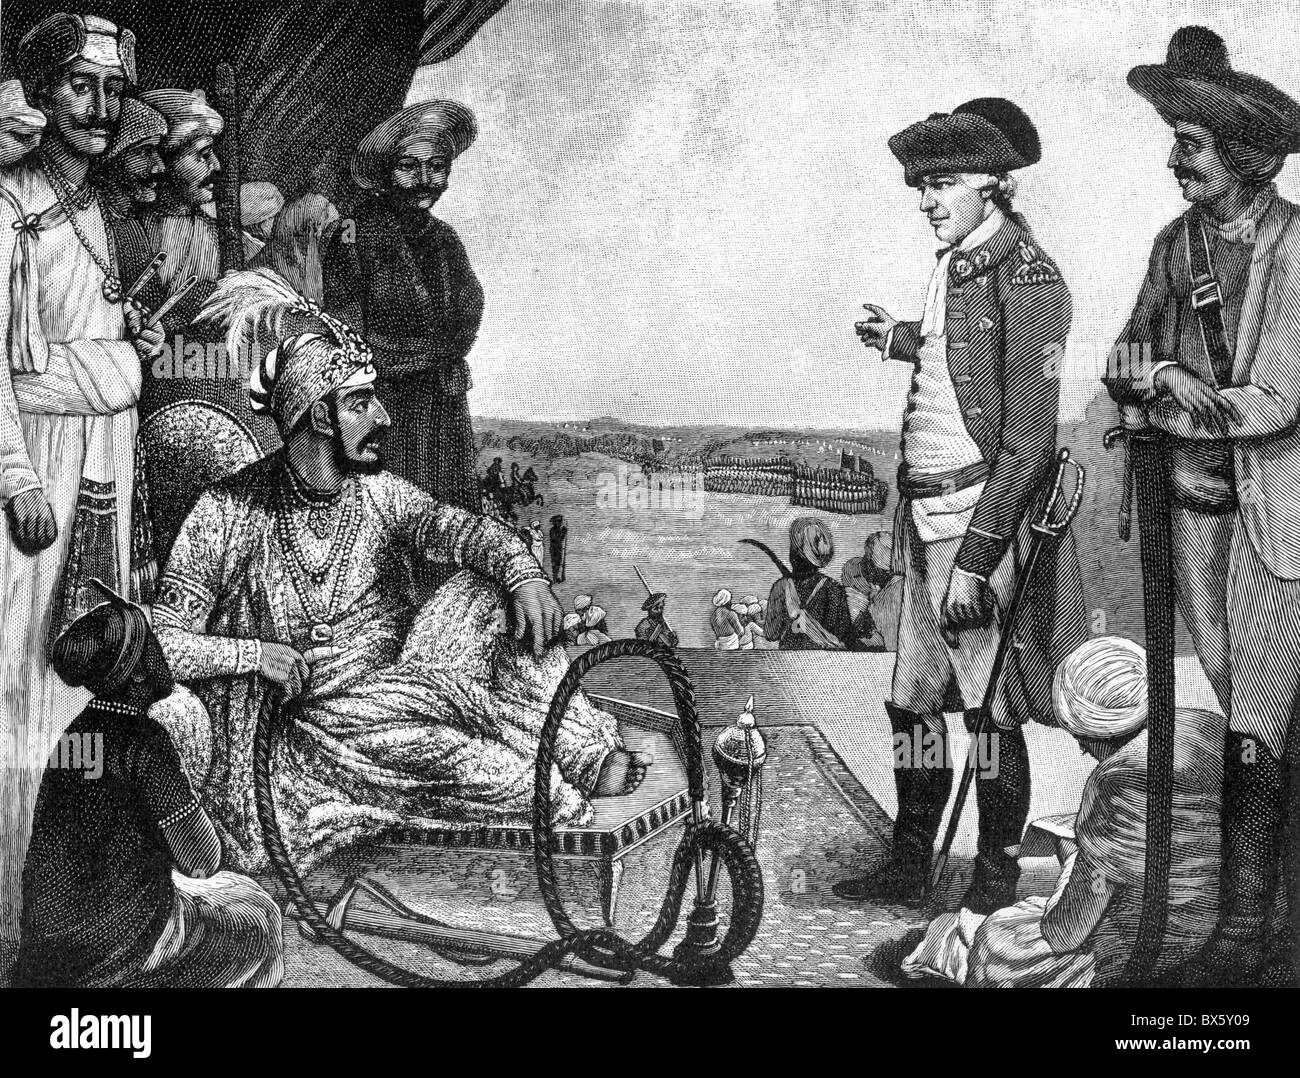 Shah Allum, Mogul of Hindustan, reviewing the East India Company's troops; Black and White Illustration of circa - Stock Image